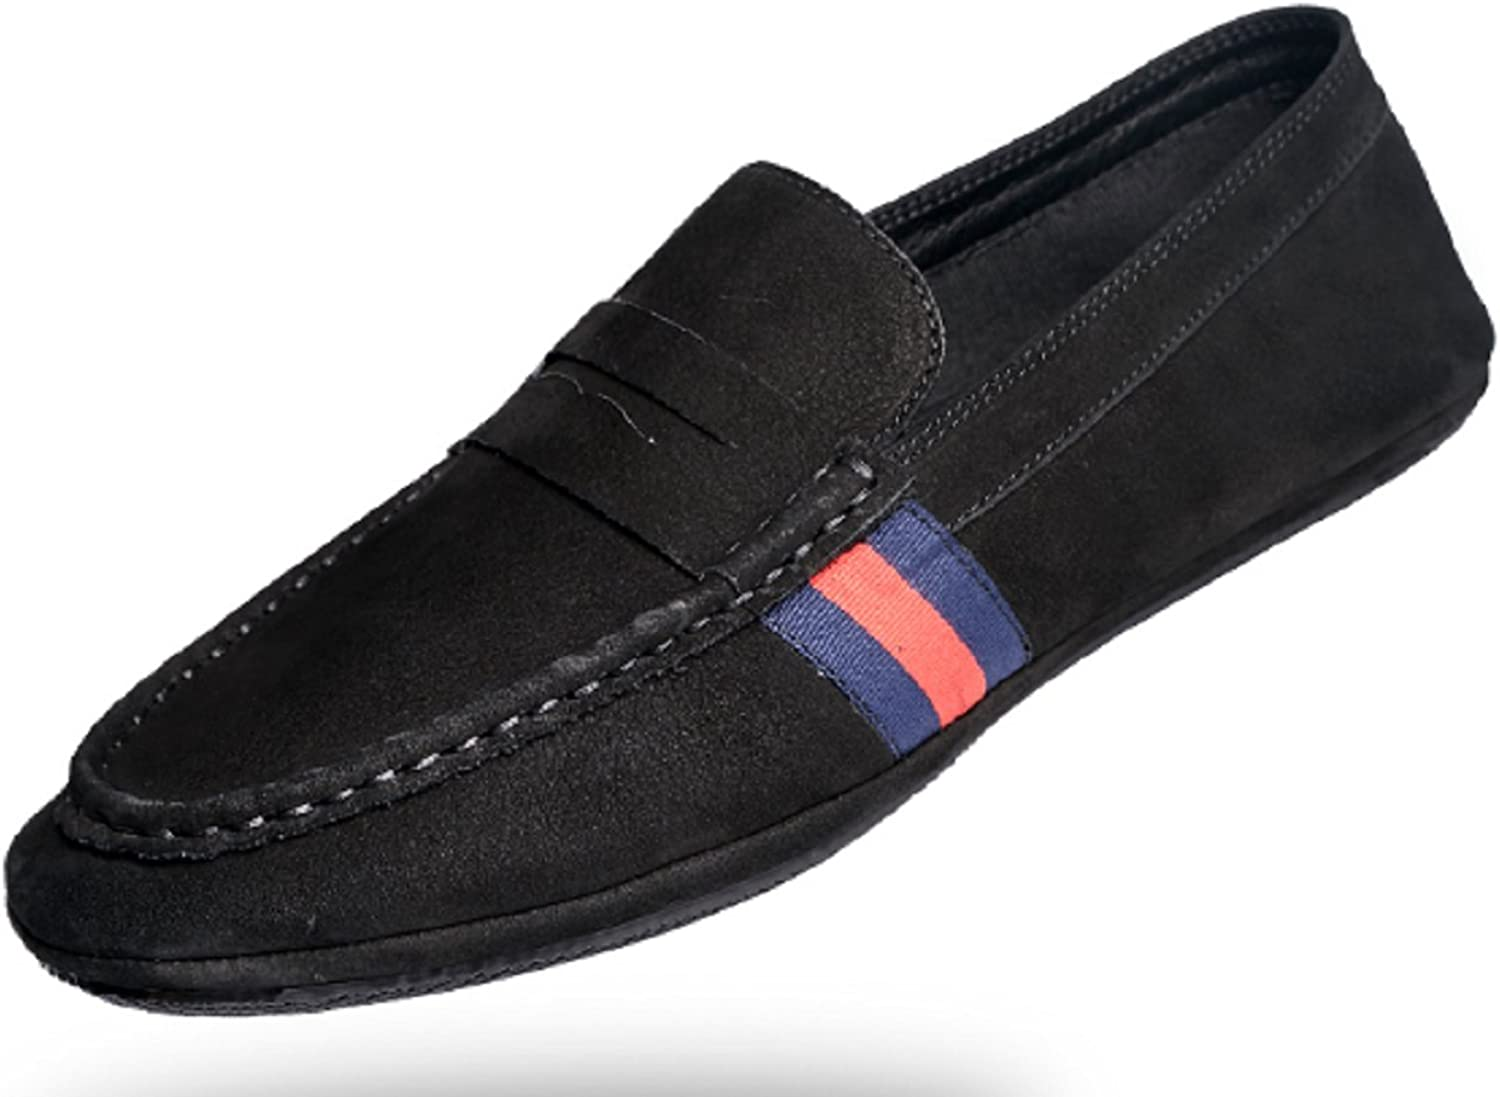 27aacd7d2f9f5 HAPPYSHOP Mens SuedeLeather Retro Leisure Moccasin Comfort Slip-on ...